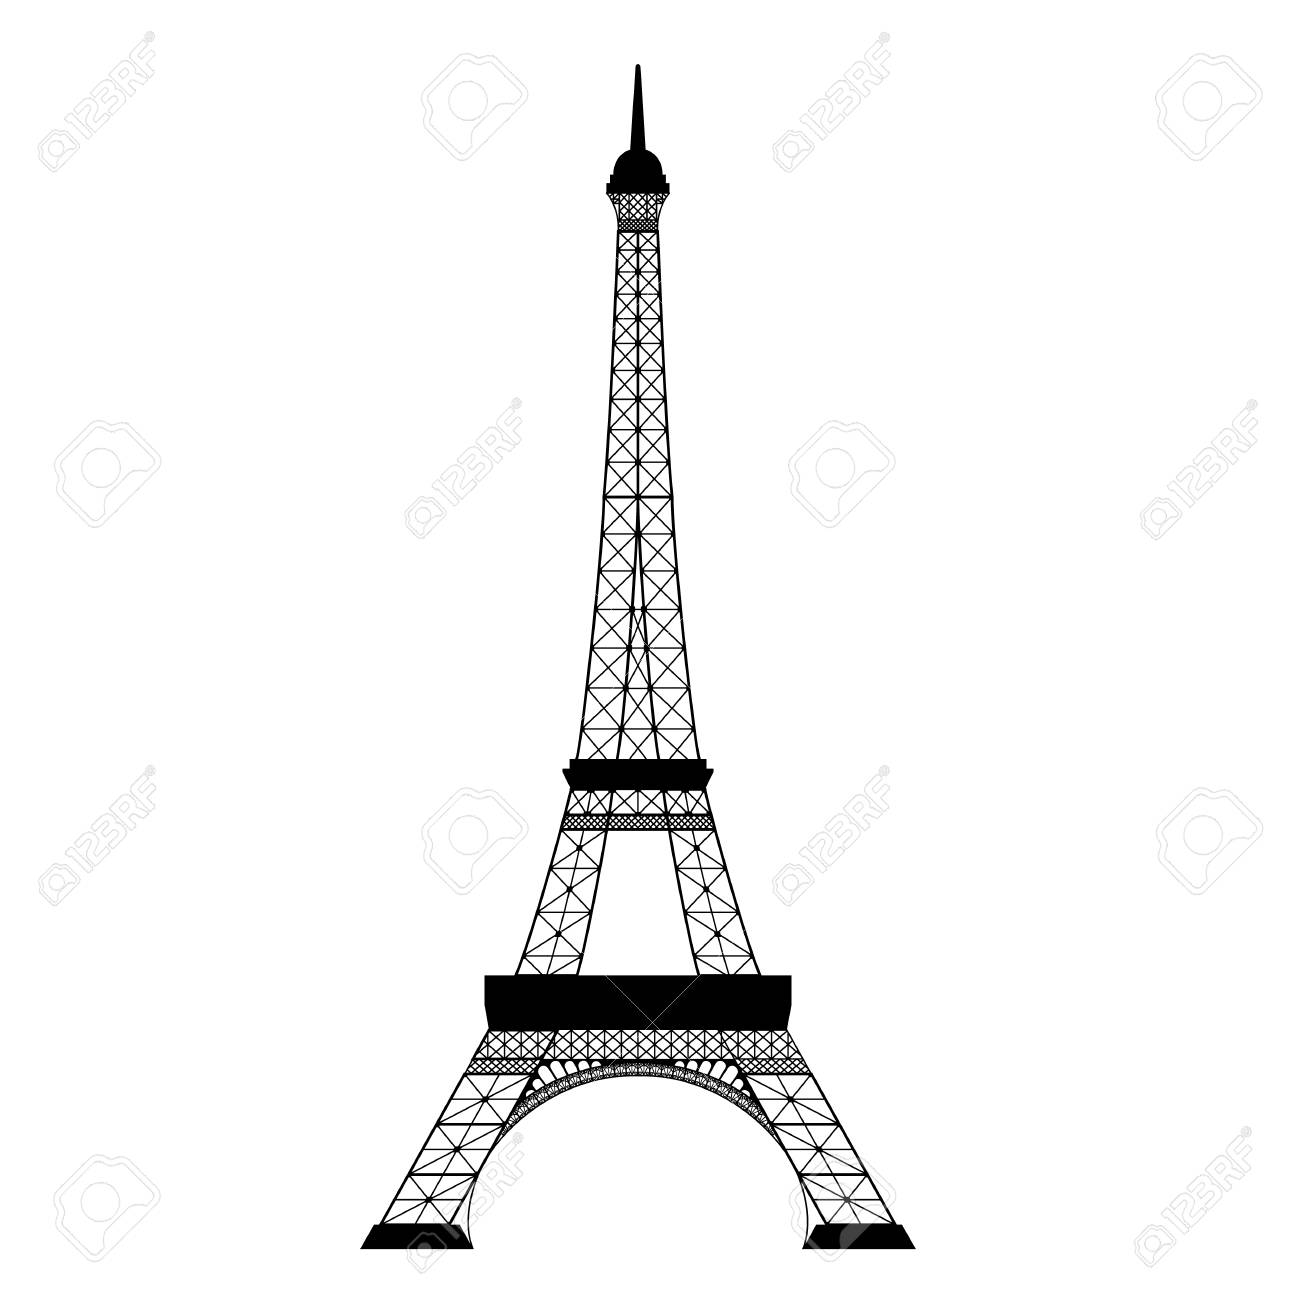 Eiffel Tower Vector & Free Eiffel Tower Vector.png.